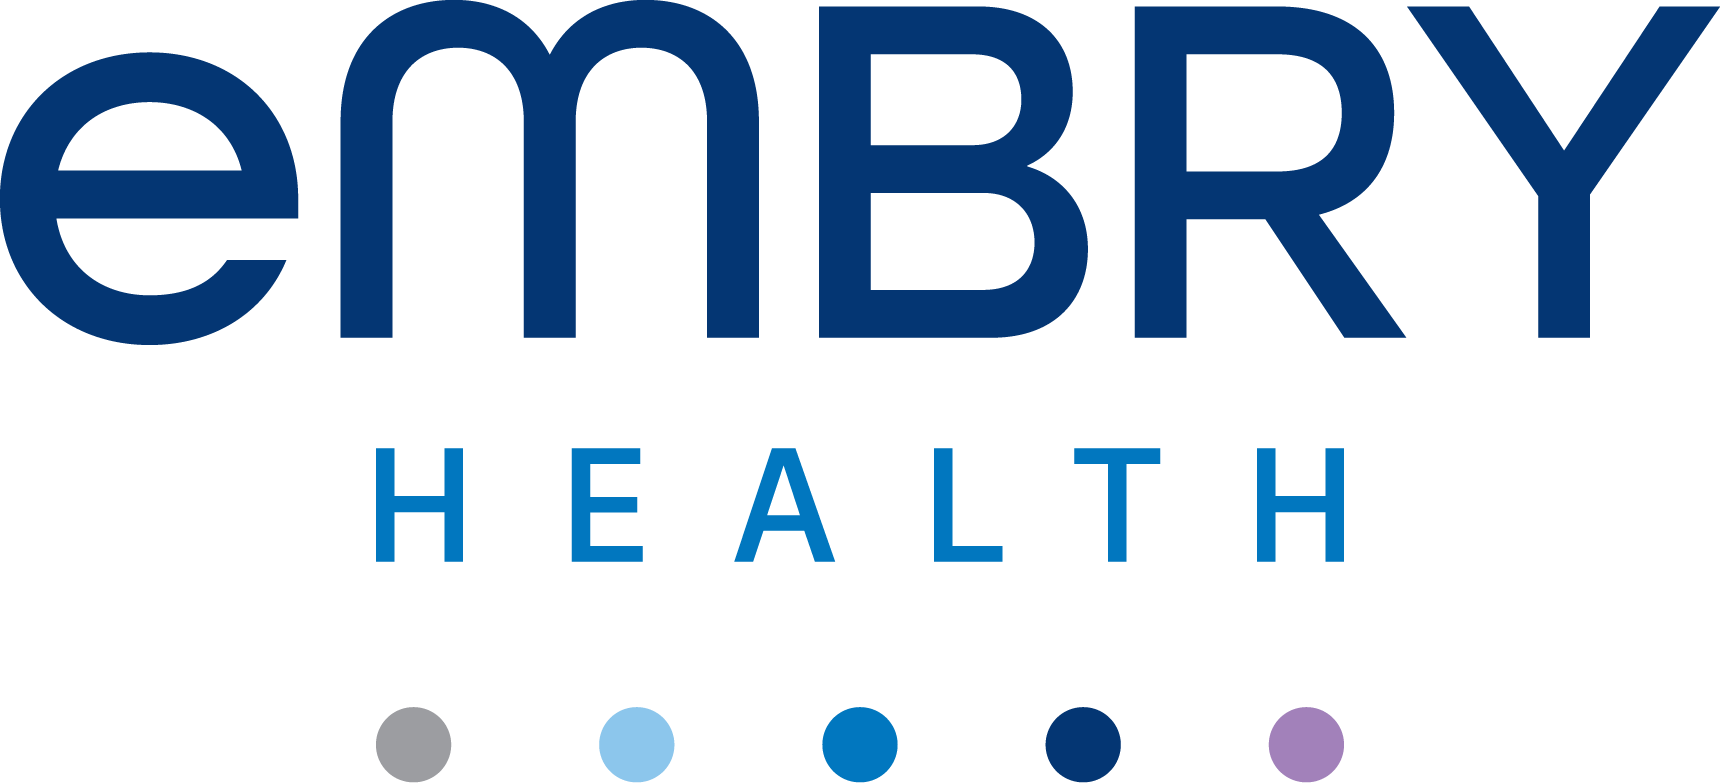 Embry Health Logo 2021